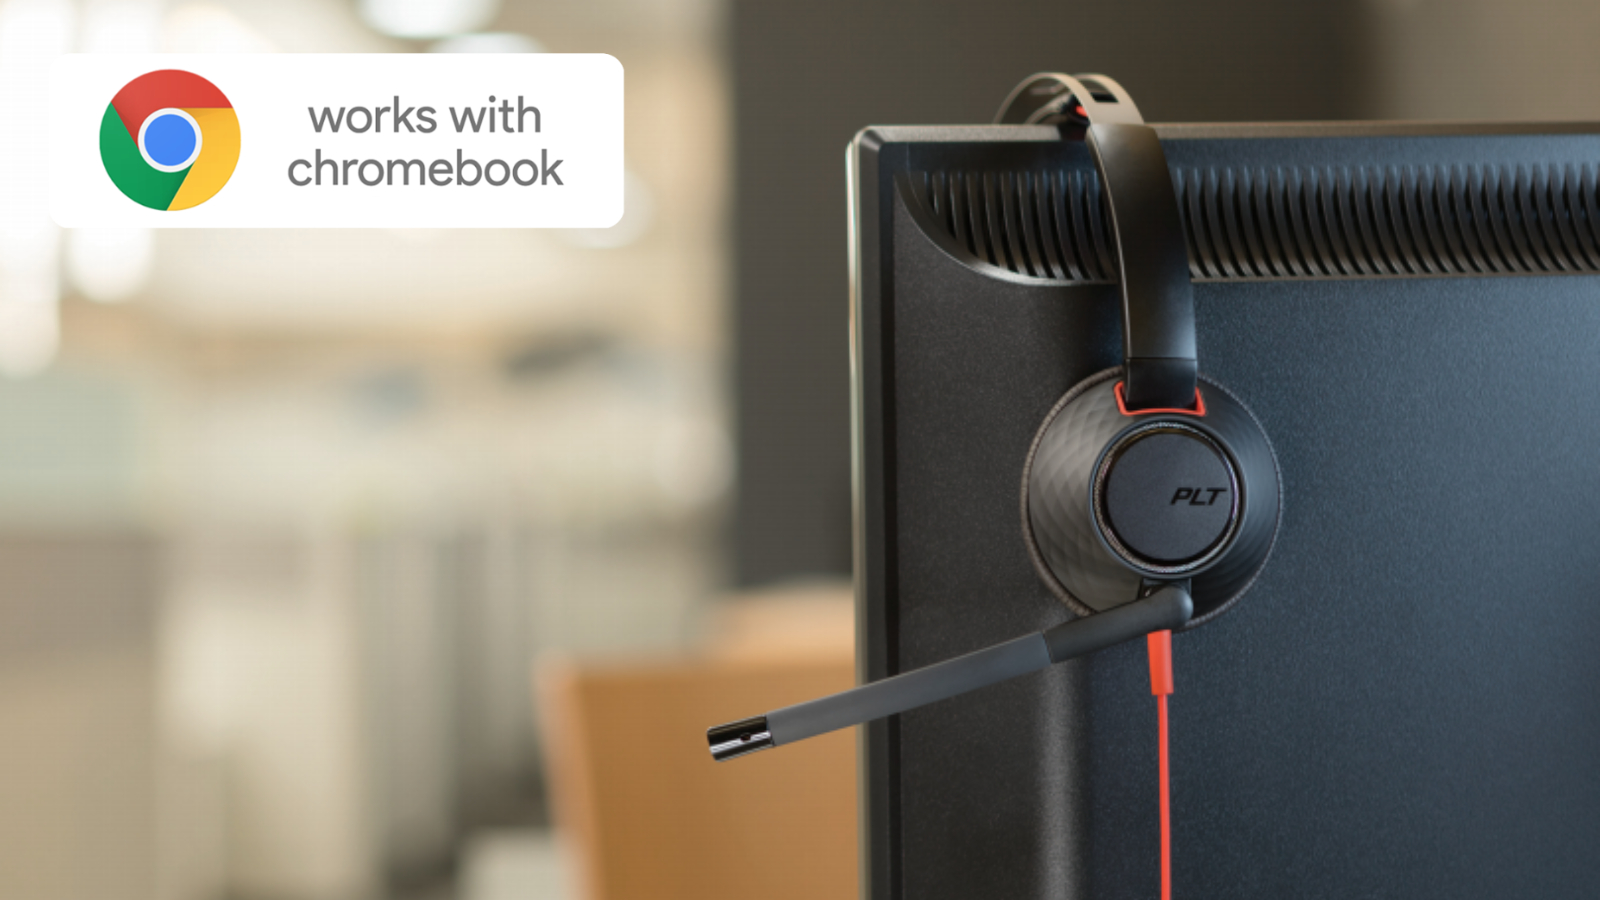 Poly (formerly Plantronics) debuts Works with Chromebook line of headsets